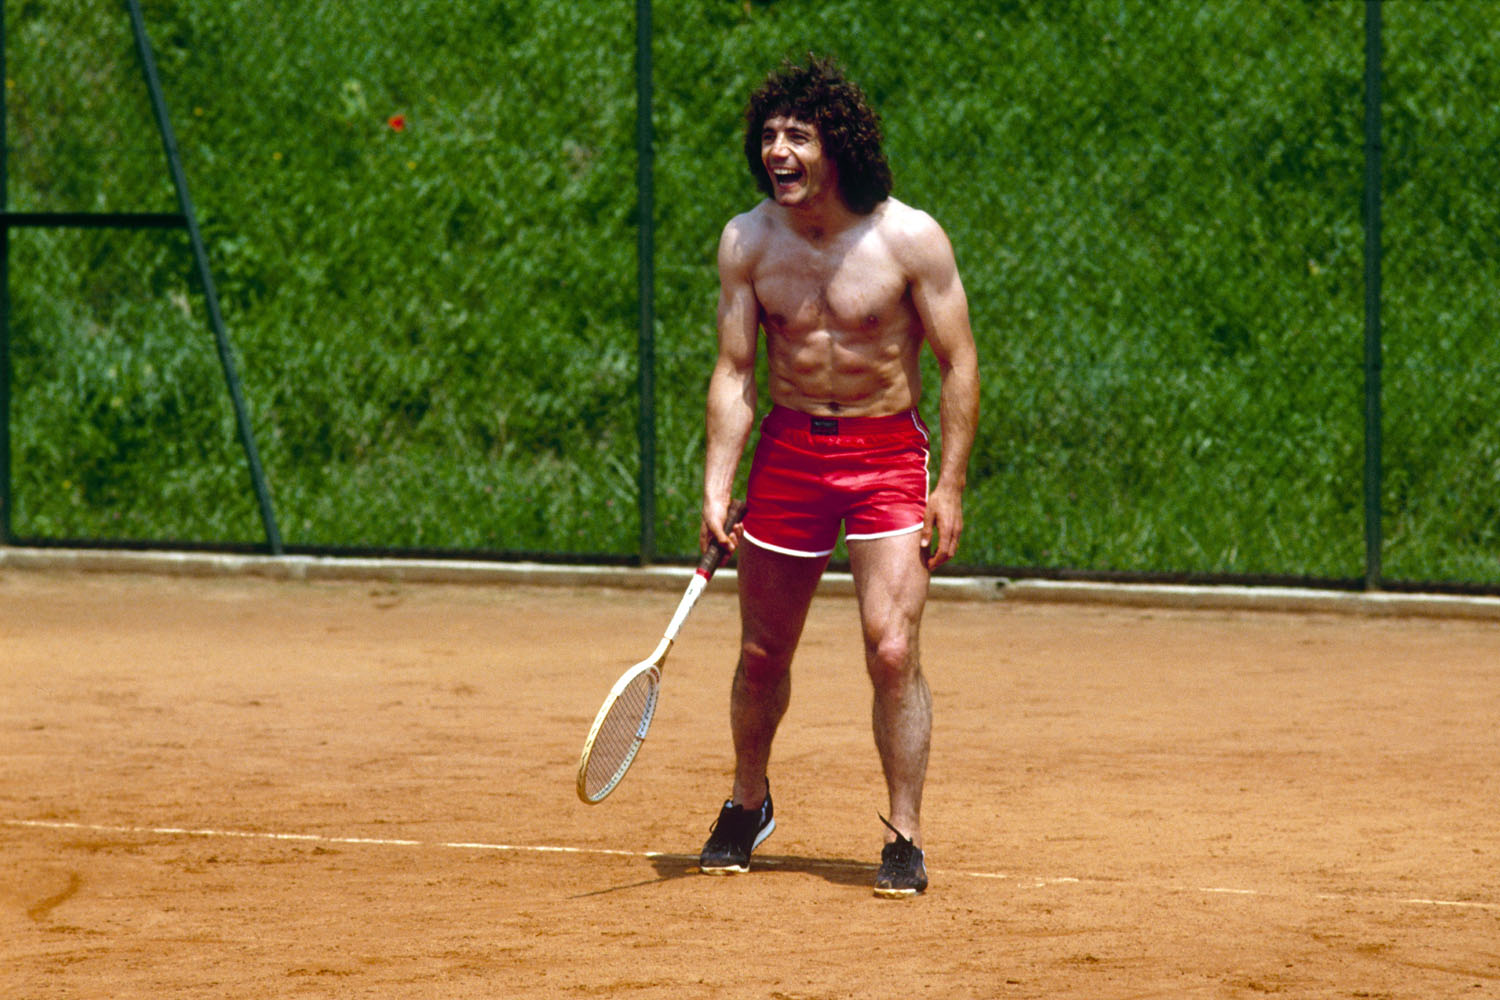 Kevin Keegan plays tennis as he trains with the England World Cup squad on June 10, 1982 at the Los Tamarises Hotel in Playa de Ereaga, Spain.